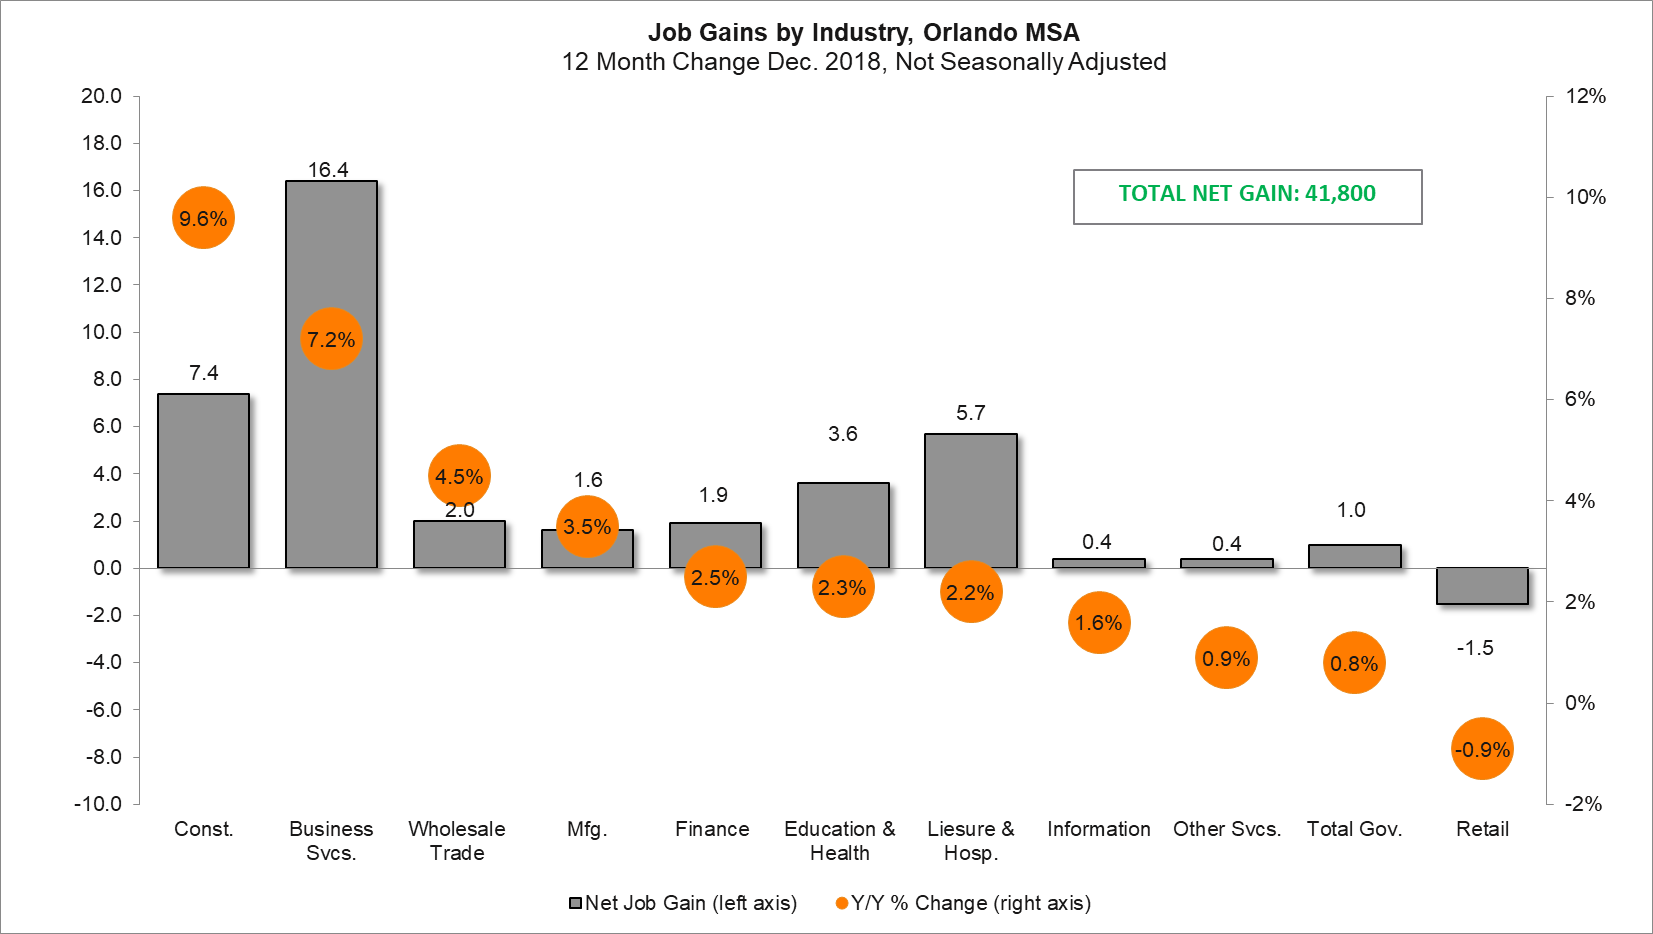 Job-Gain-by-Industry